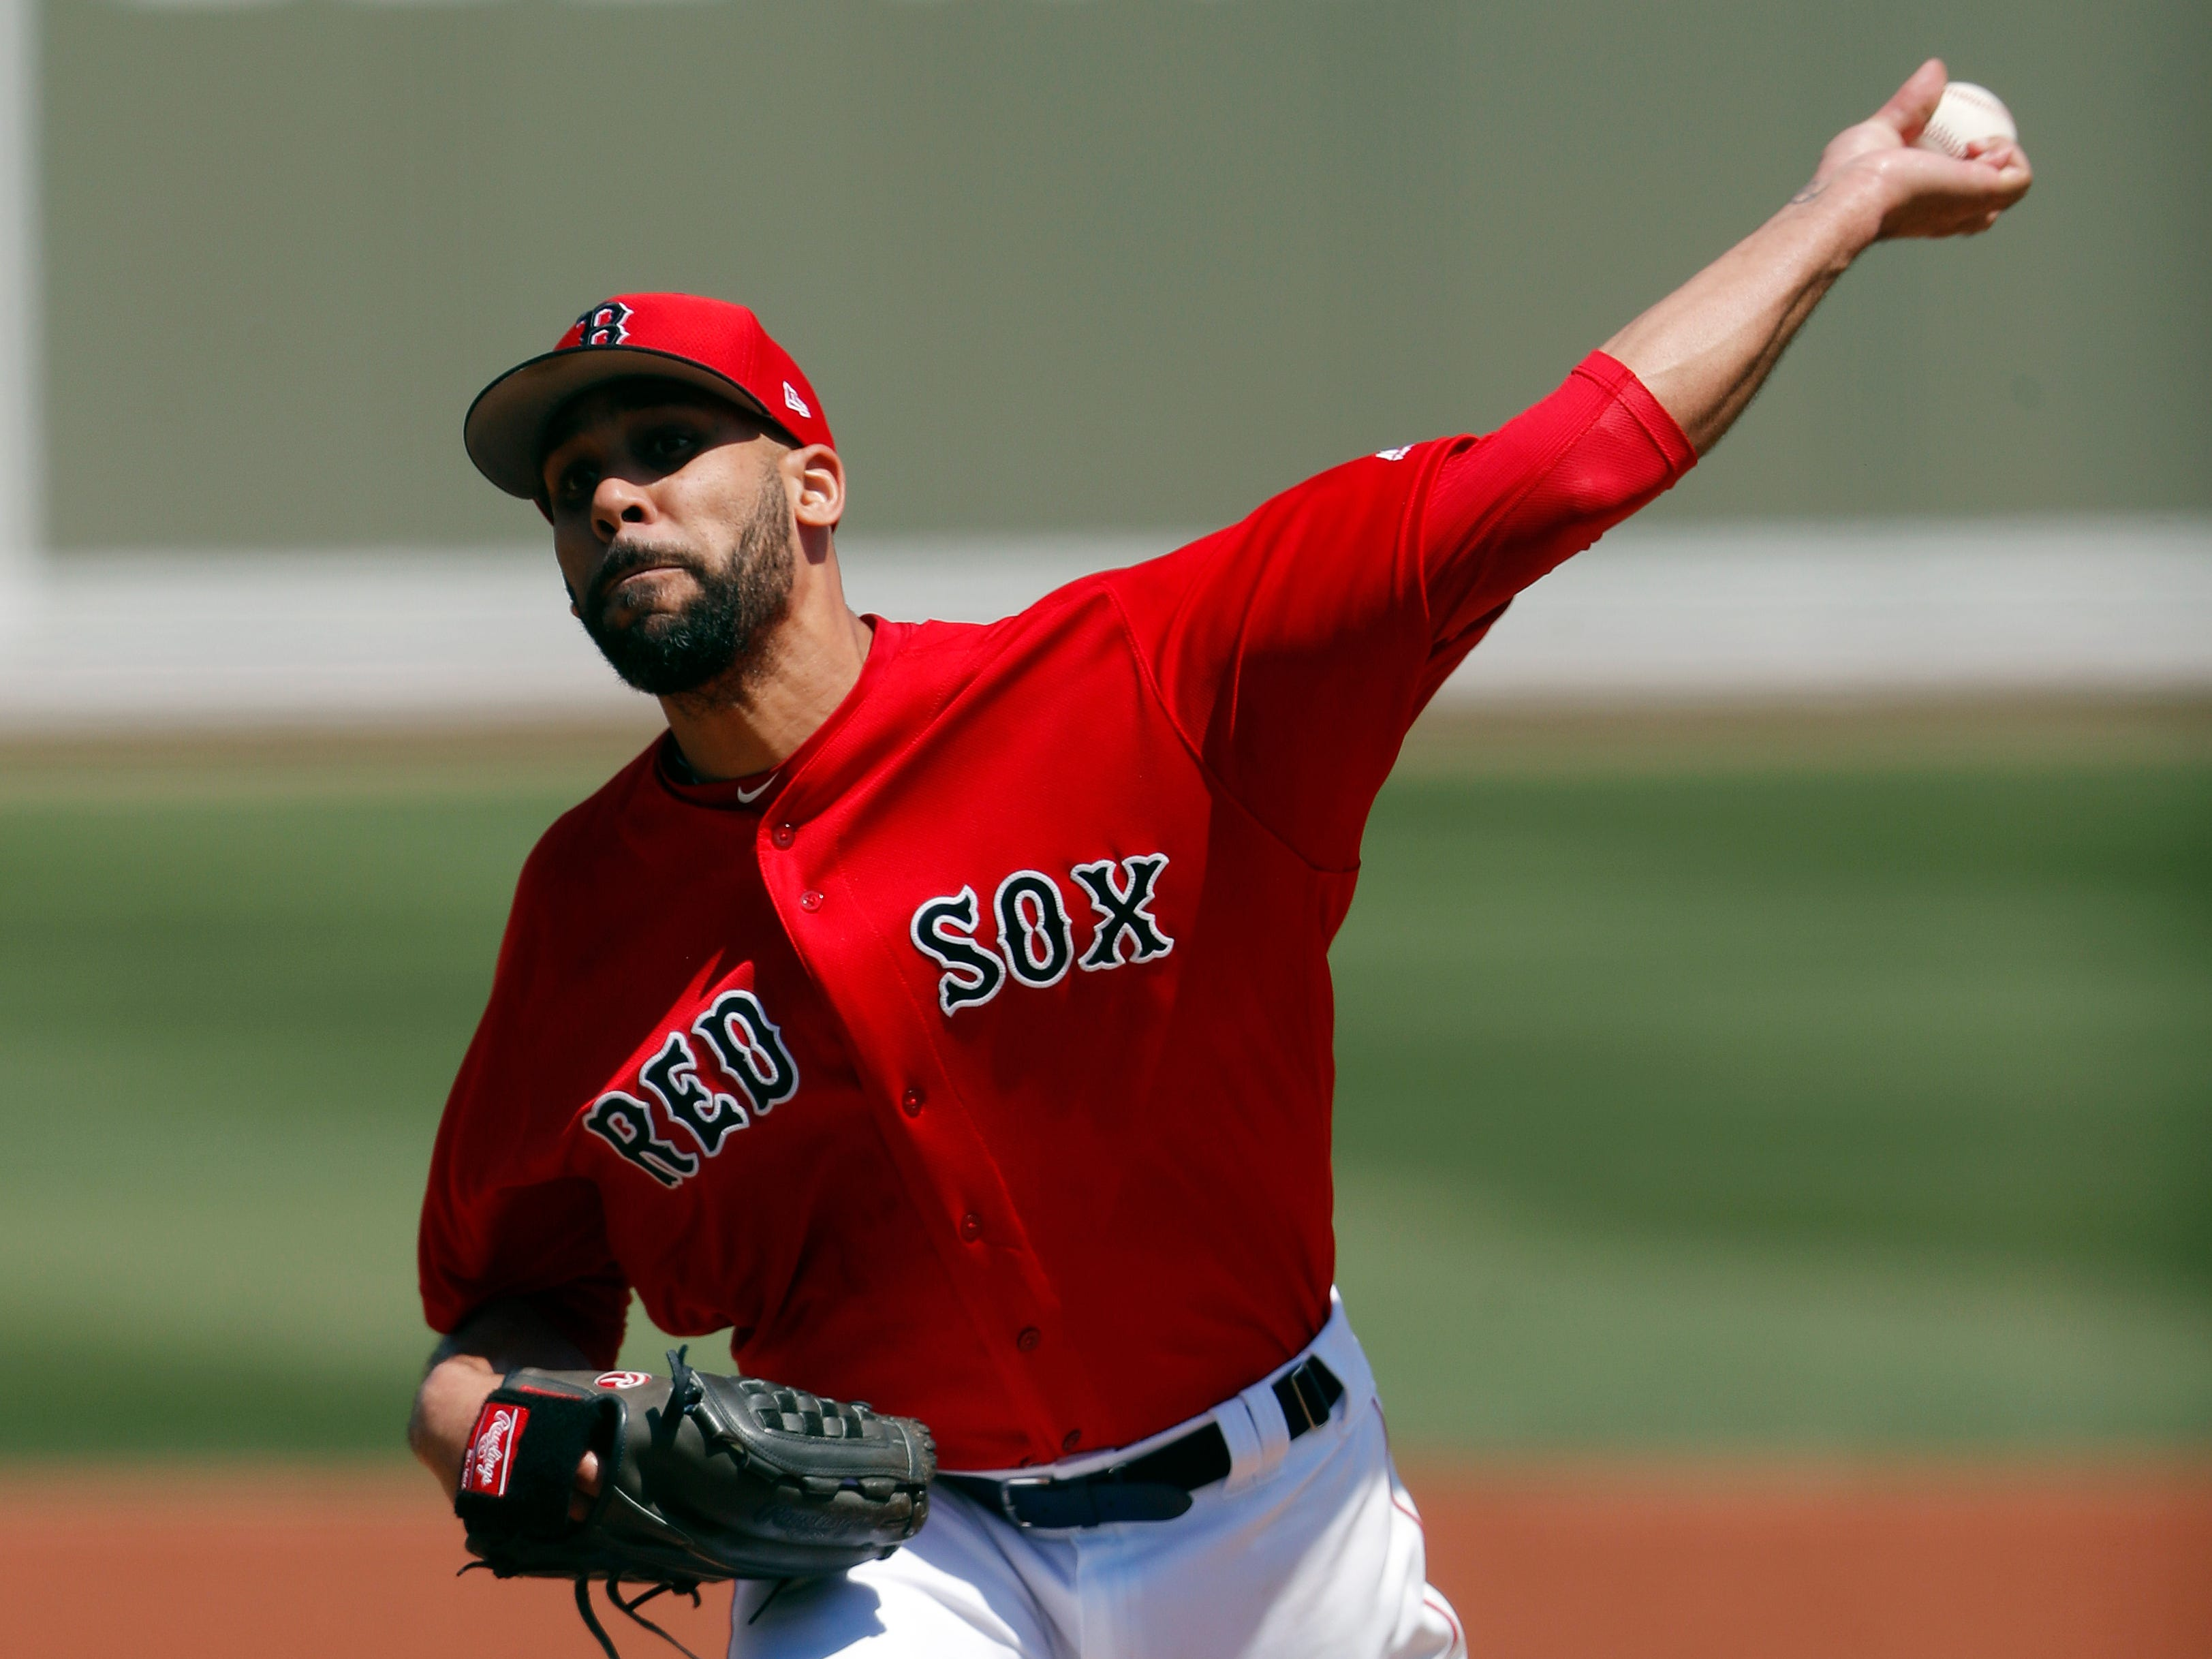 Red Sox starting pitcher David Price allowed two hits and two runs vs. the Tigers in his three innings of work.